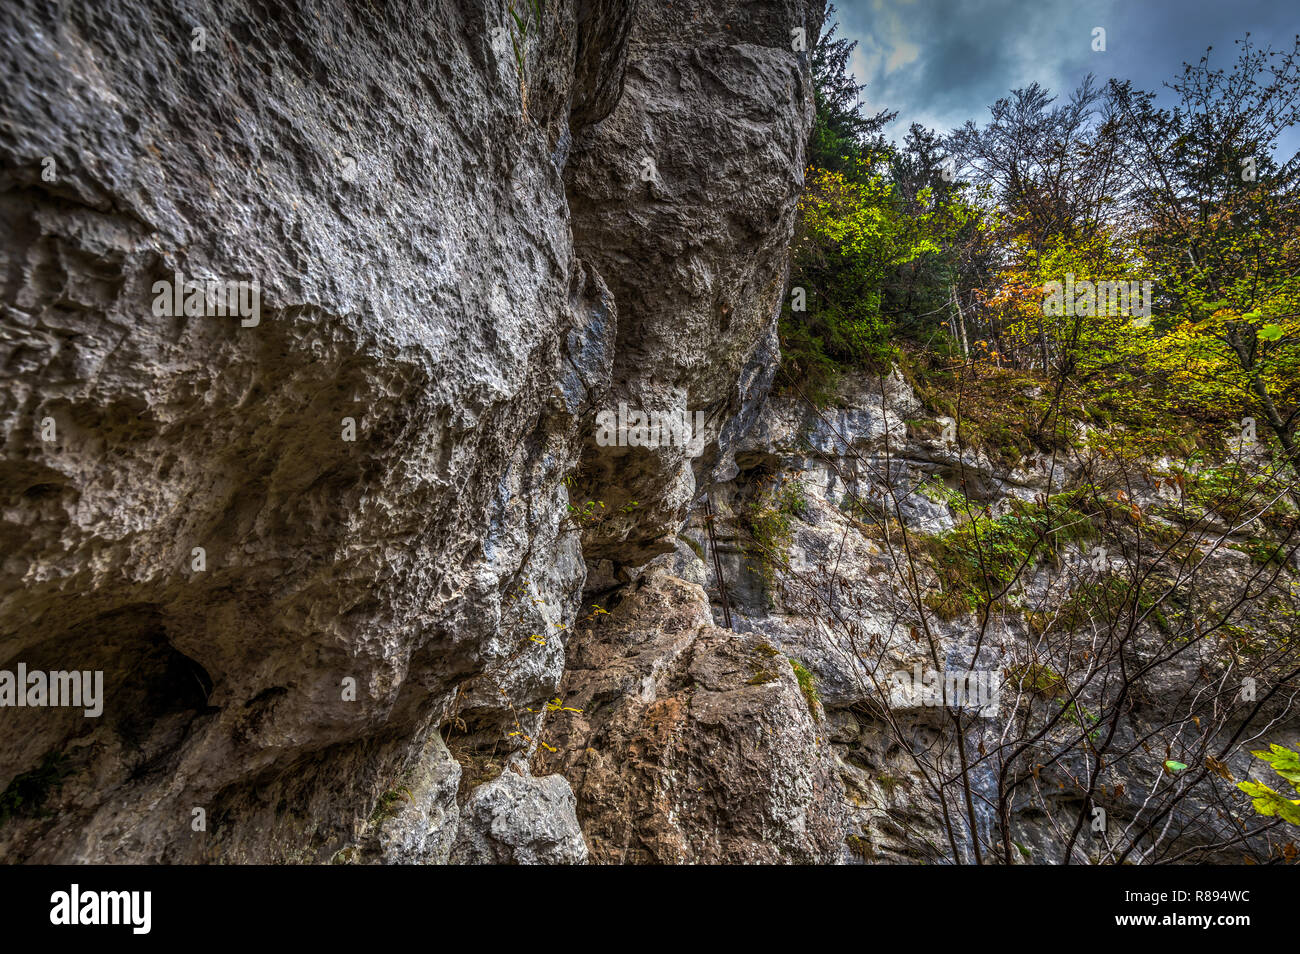 Metal ladder on via ferrata route Rudolf Decker Steig in Steinwandklamm, lower Austria - Stock Image